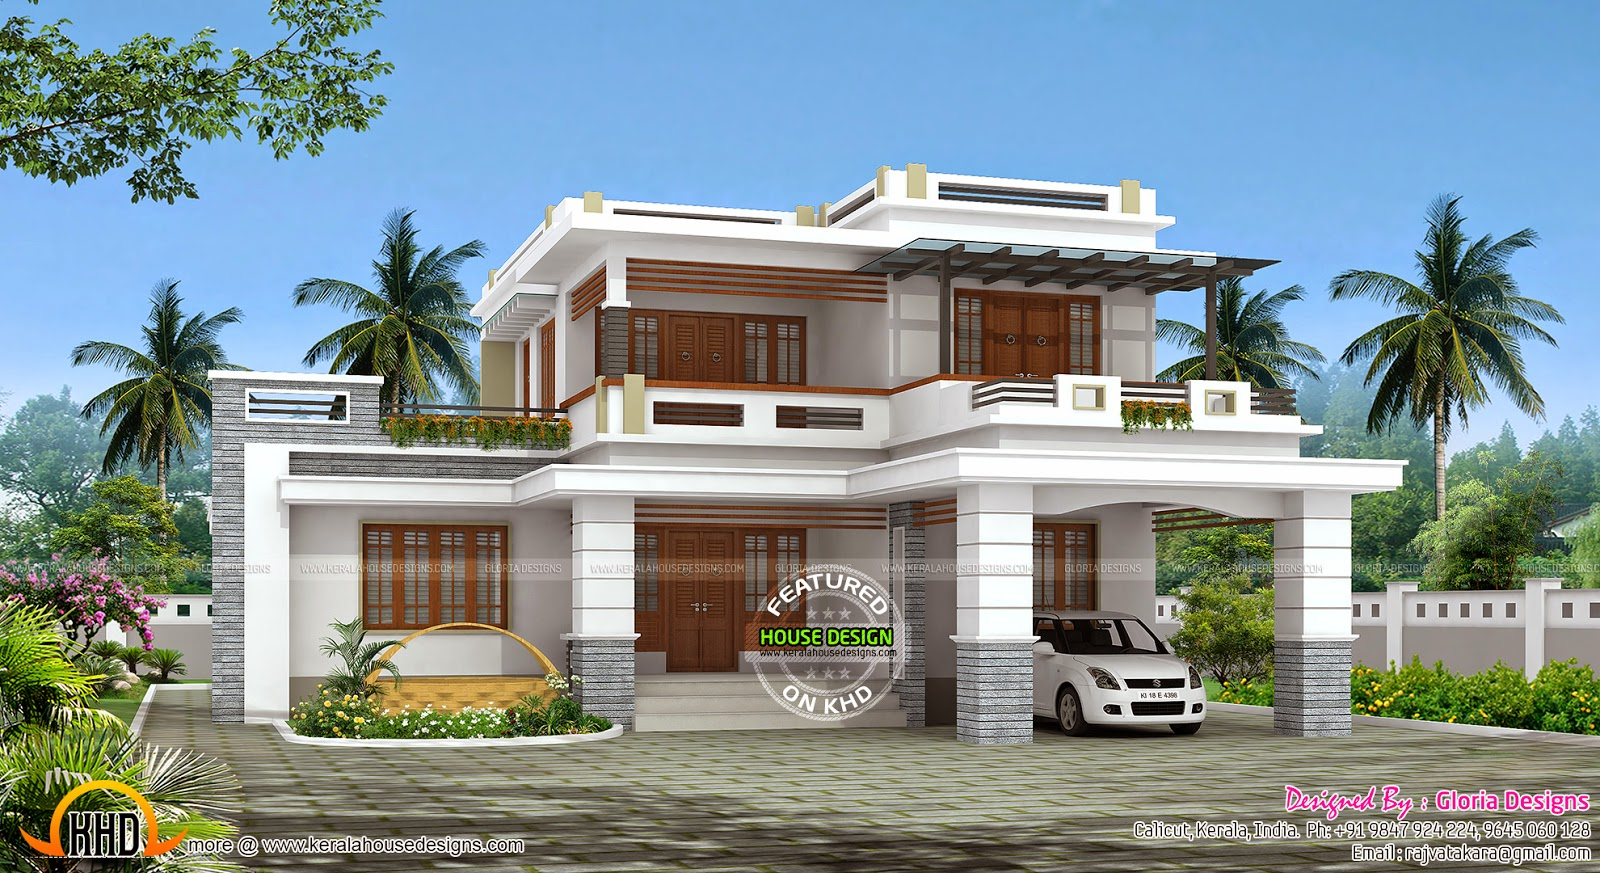 Kerala Home Design Flat Roof Elevation Of 2540 Sq Ft Decorative Flat Roof House Kerala Home Design